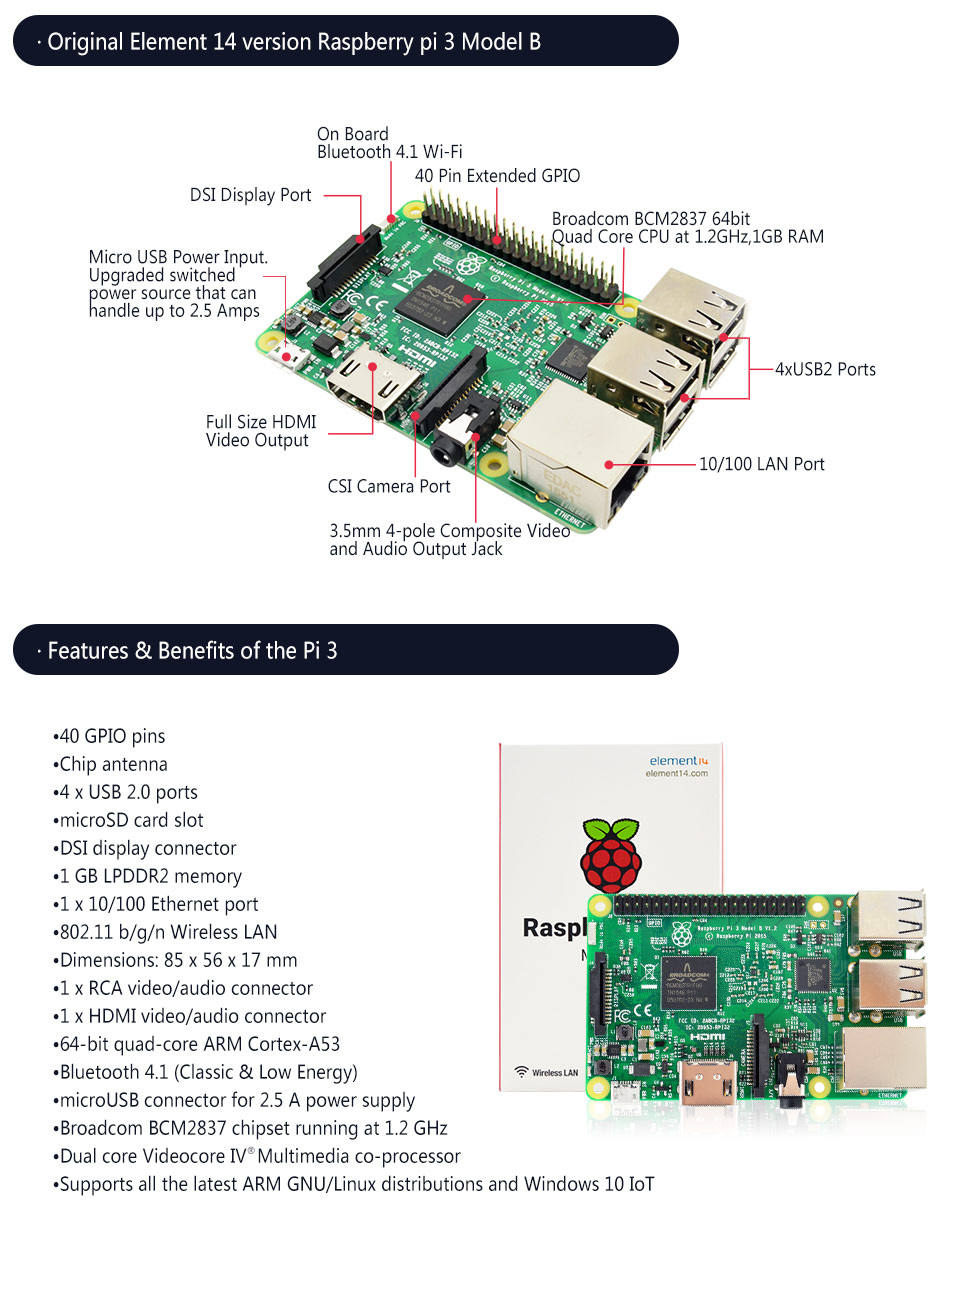 Raspberry Pi 3 Model B Board Computers Accessories Acts As An Output Of The Circuit Click To View Fullsize Picture Product Description